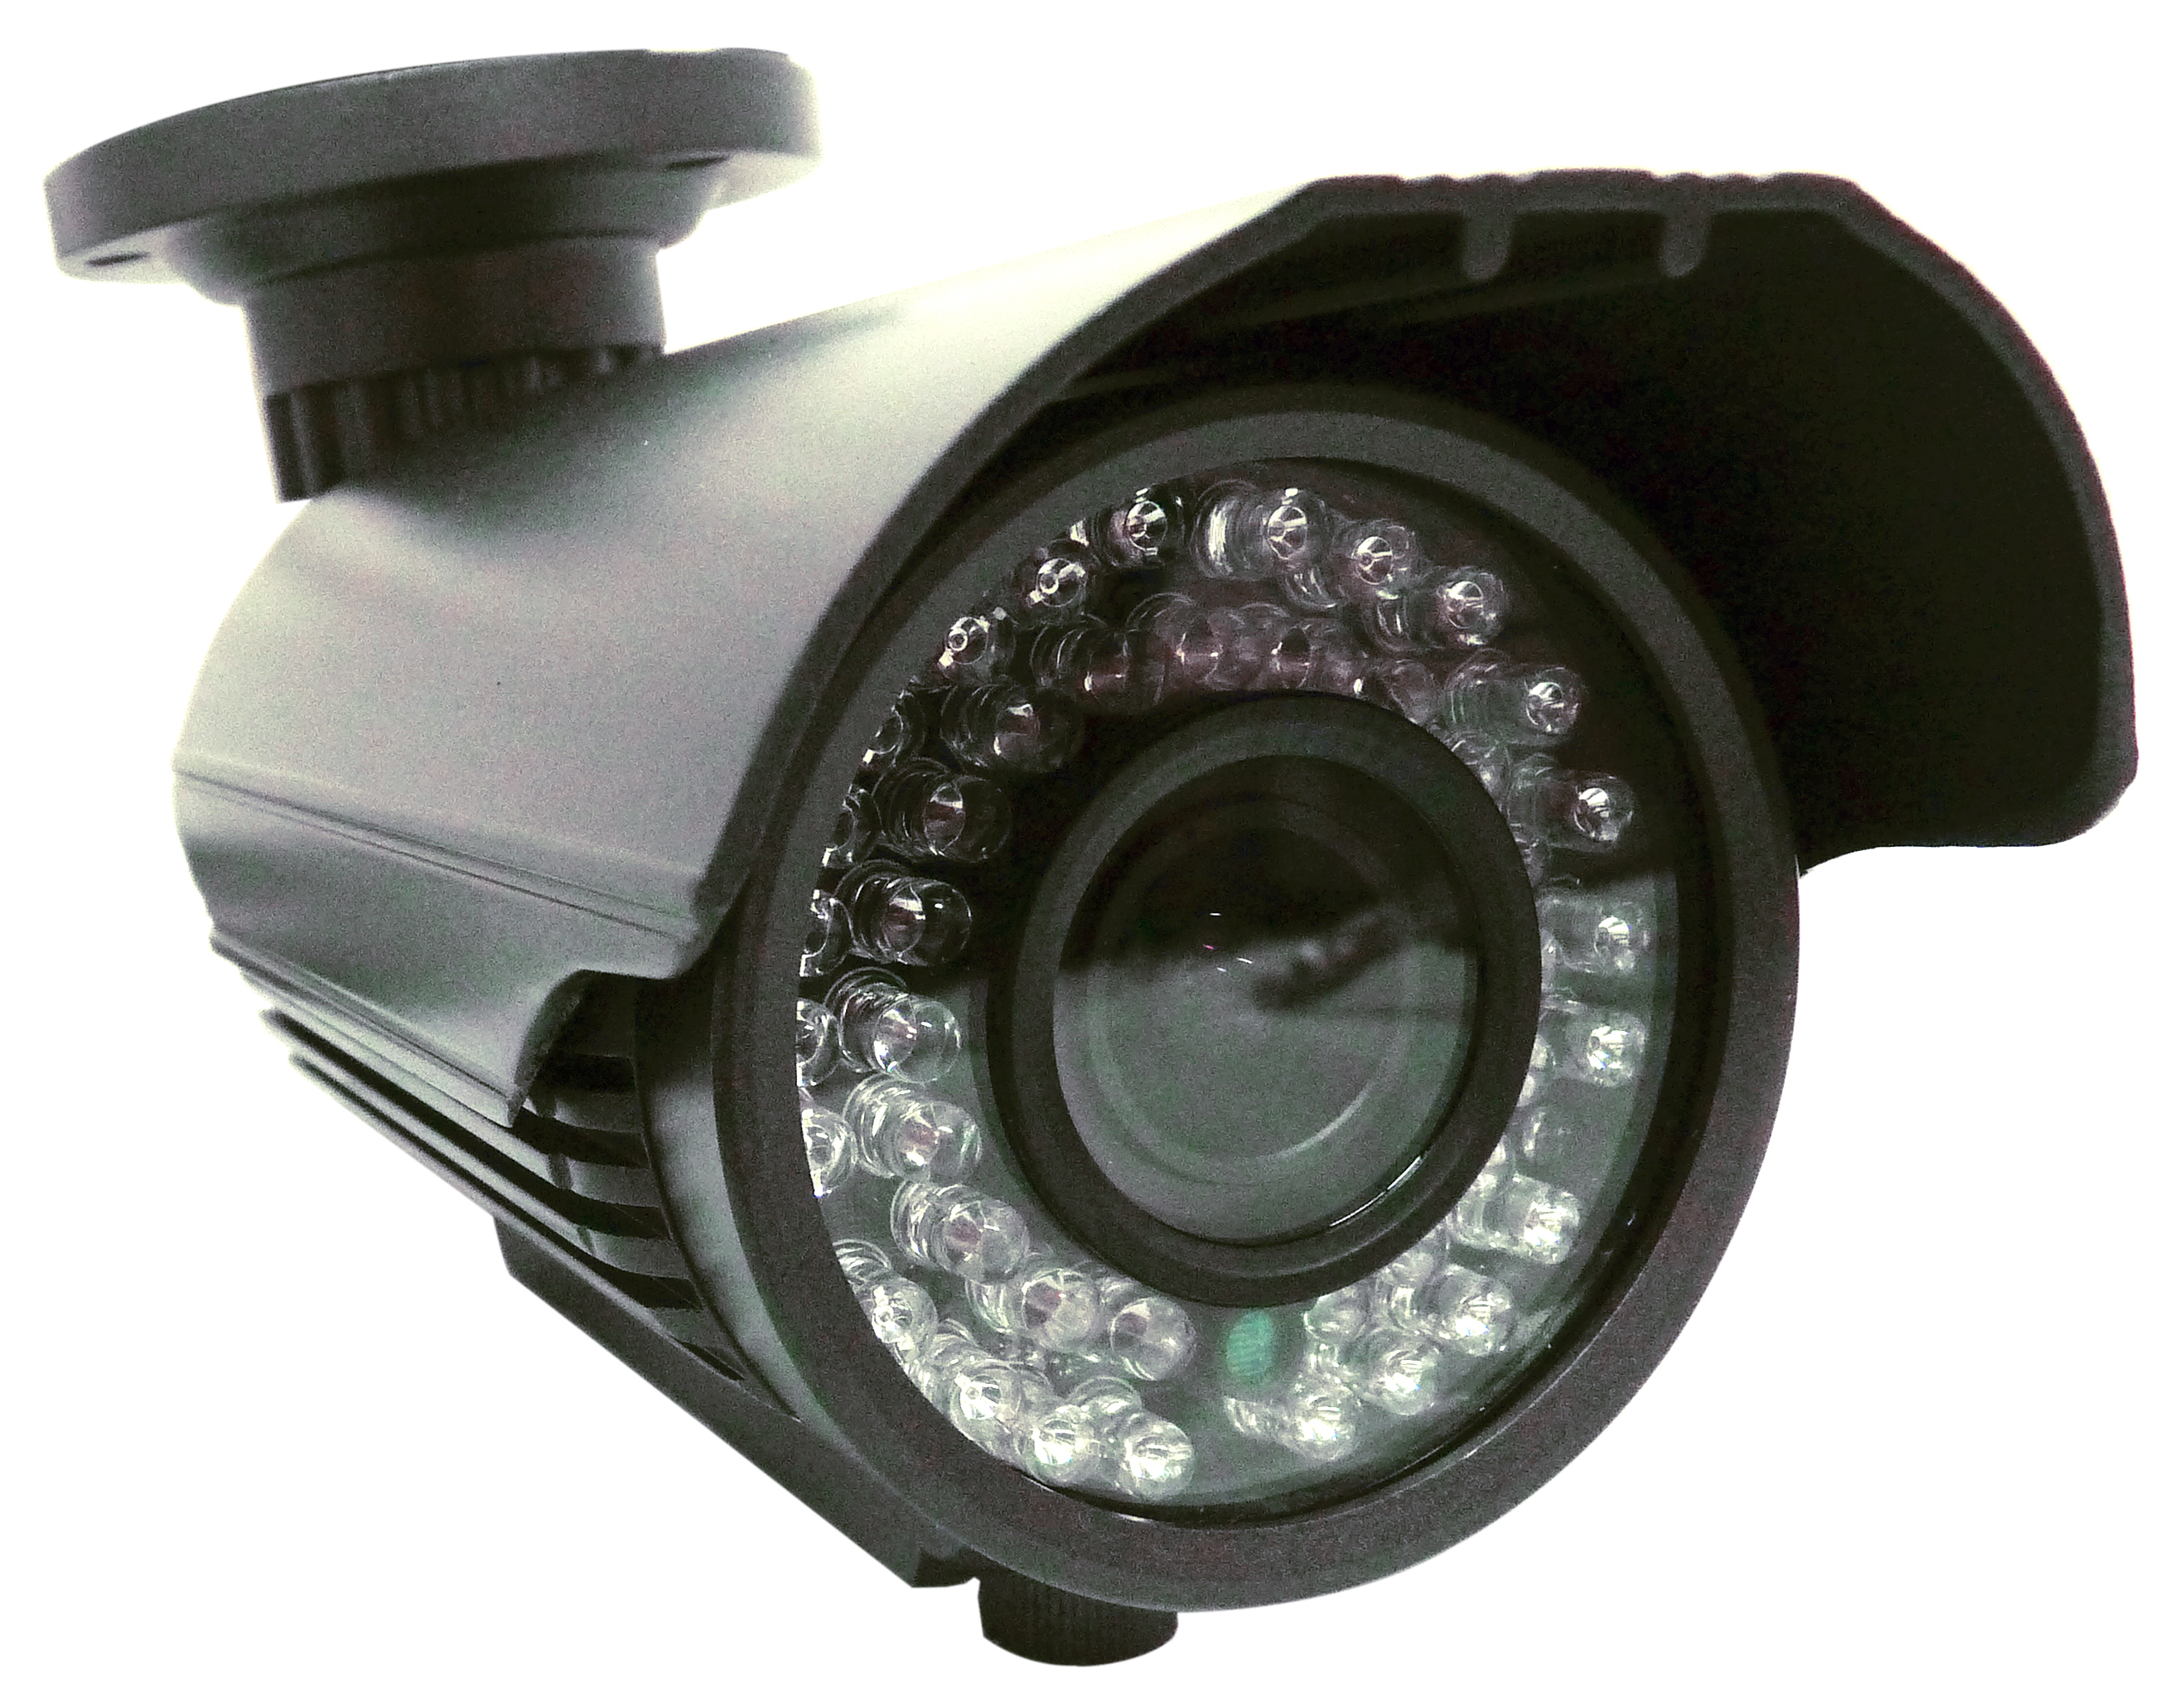 Image for DBS 116G - 700TVL CCTV Bullet Security Camera - 1/3'' Sony Super HAD CCD II